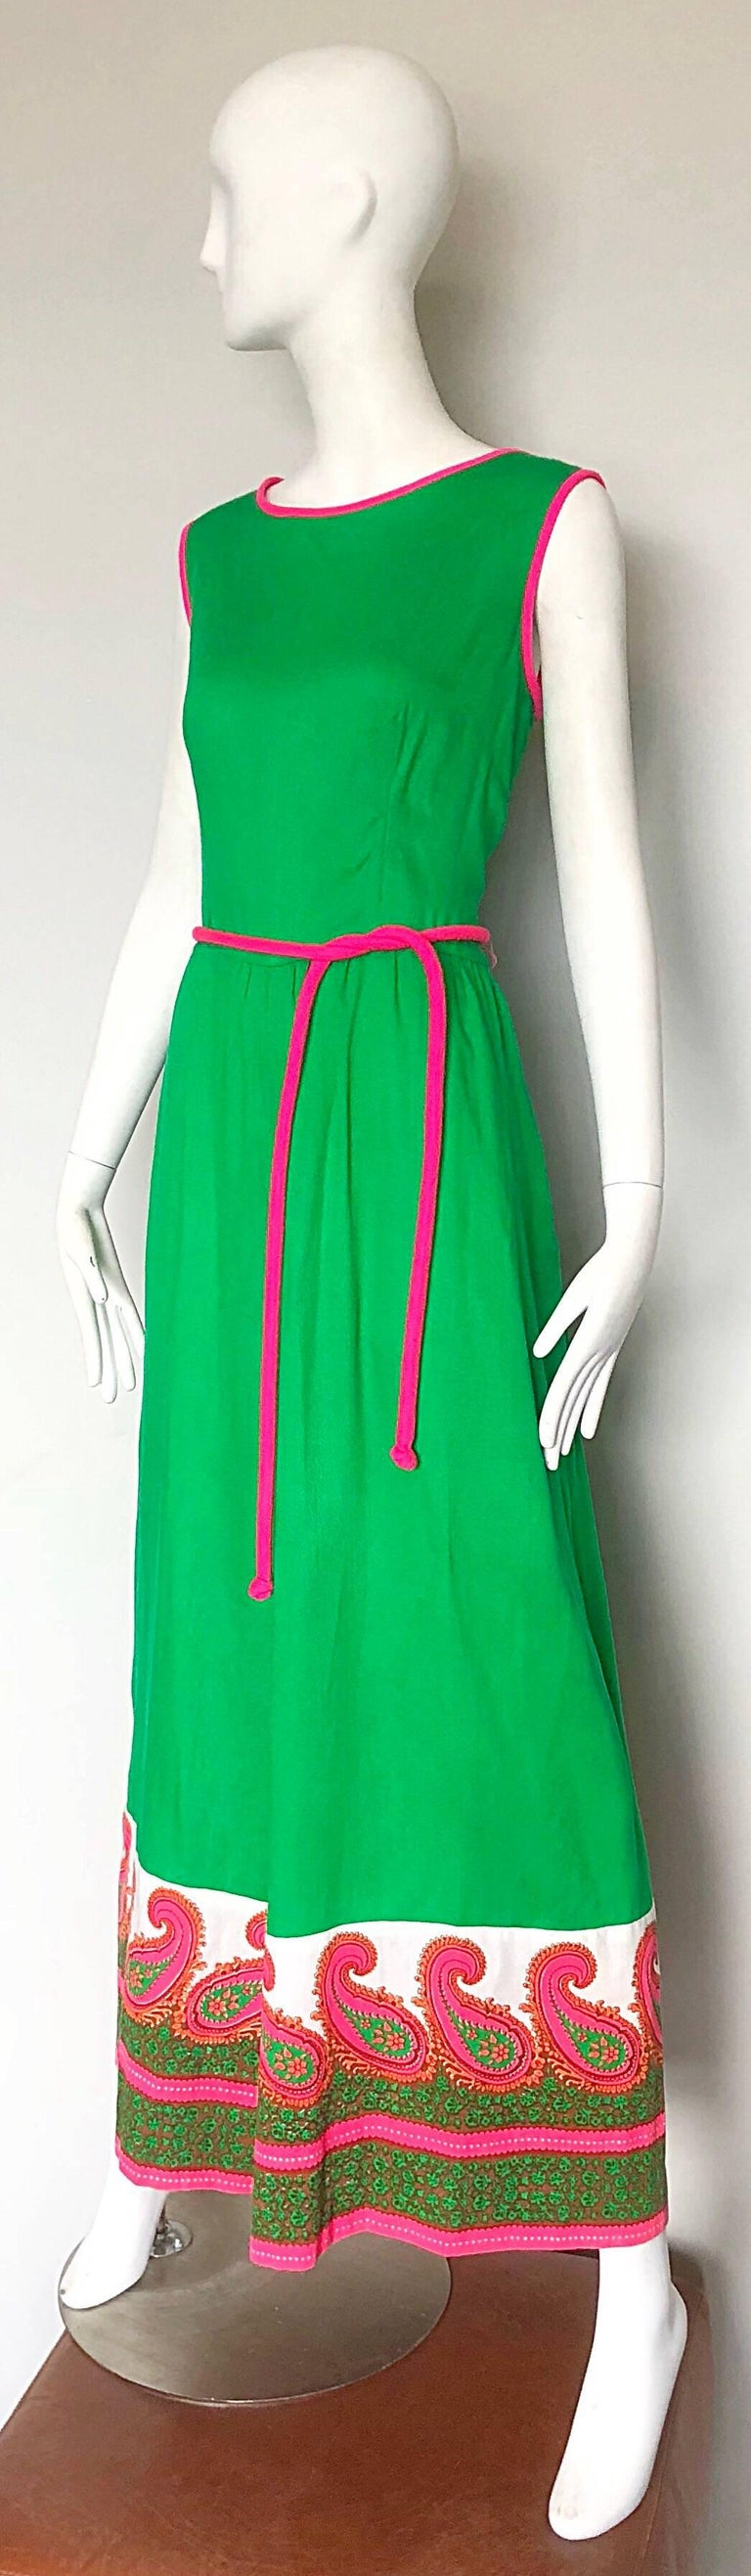 Women's Alfred Shaheen 1960s Large Size Kelly Green + Pink Vintage 60s Palazzo Jumpsuit For Sale